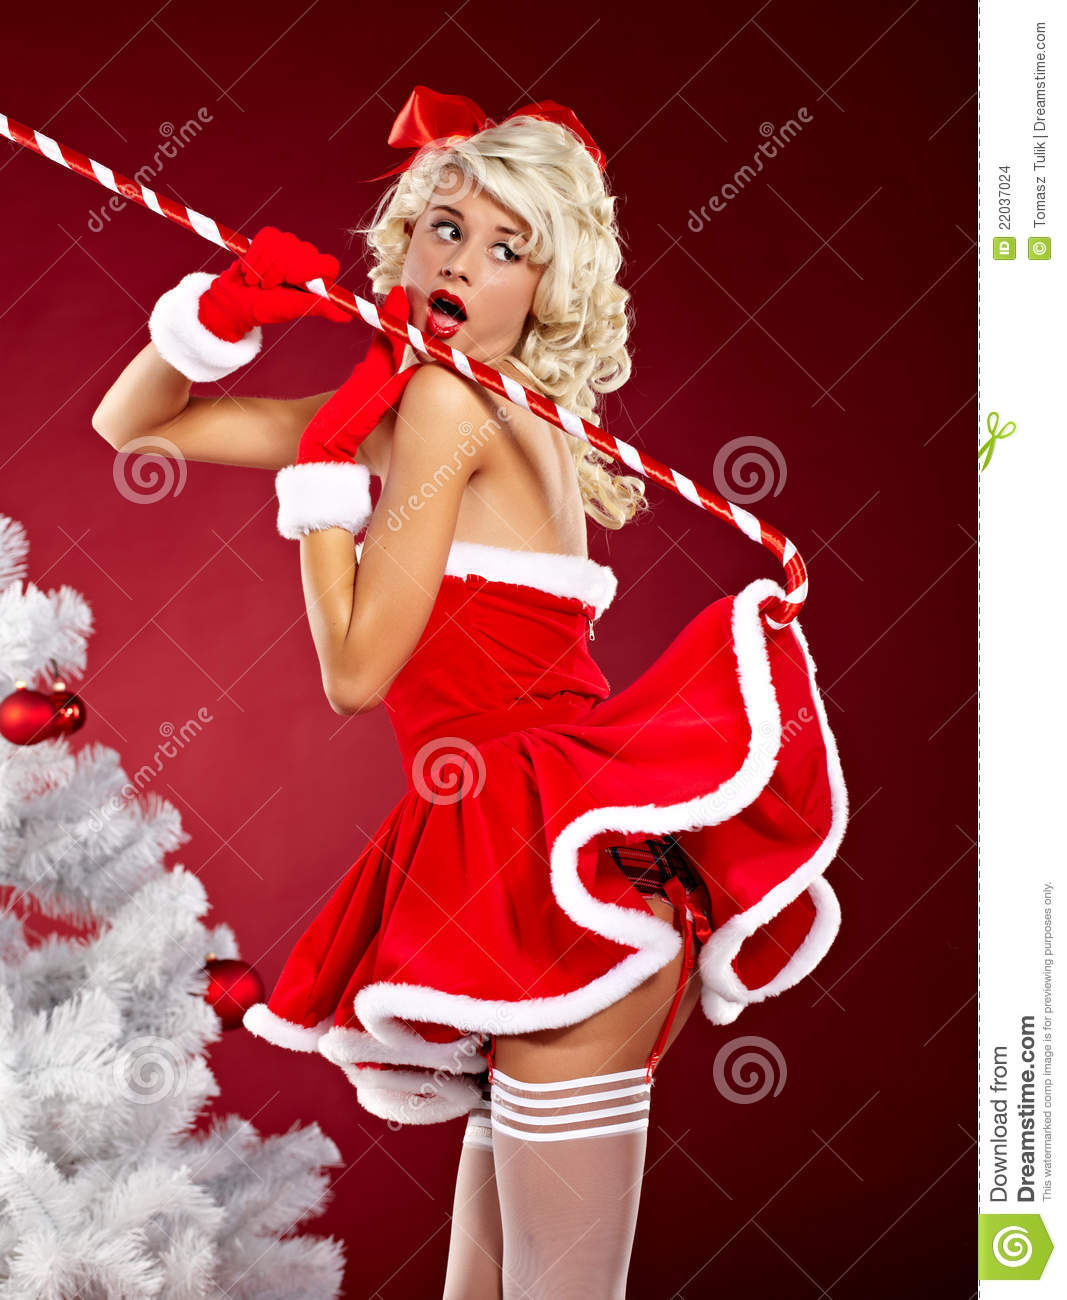 pin up girl wearing santa claus clothes stock images. Black Bedroom Furniture Sets. Home Design Ideas